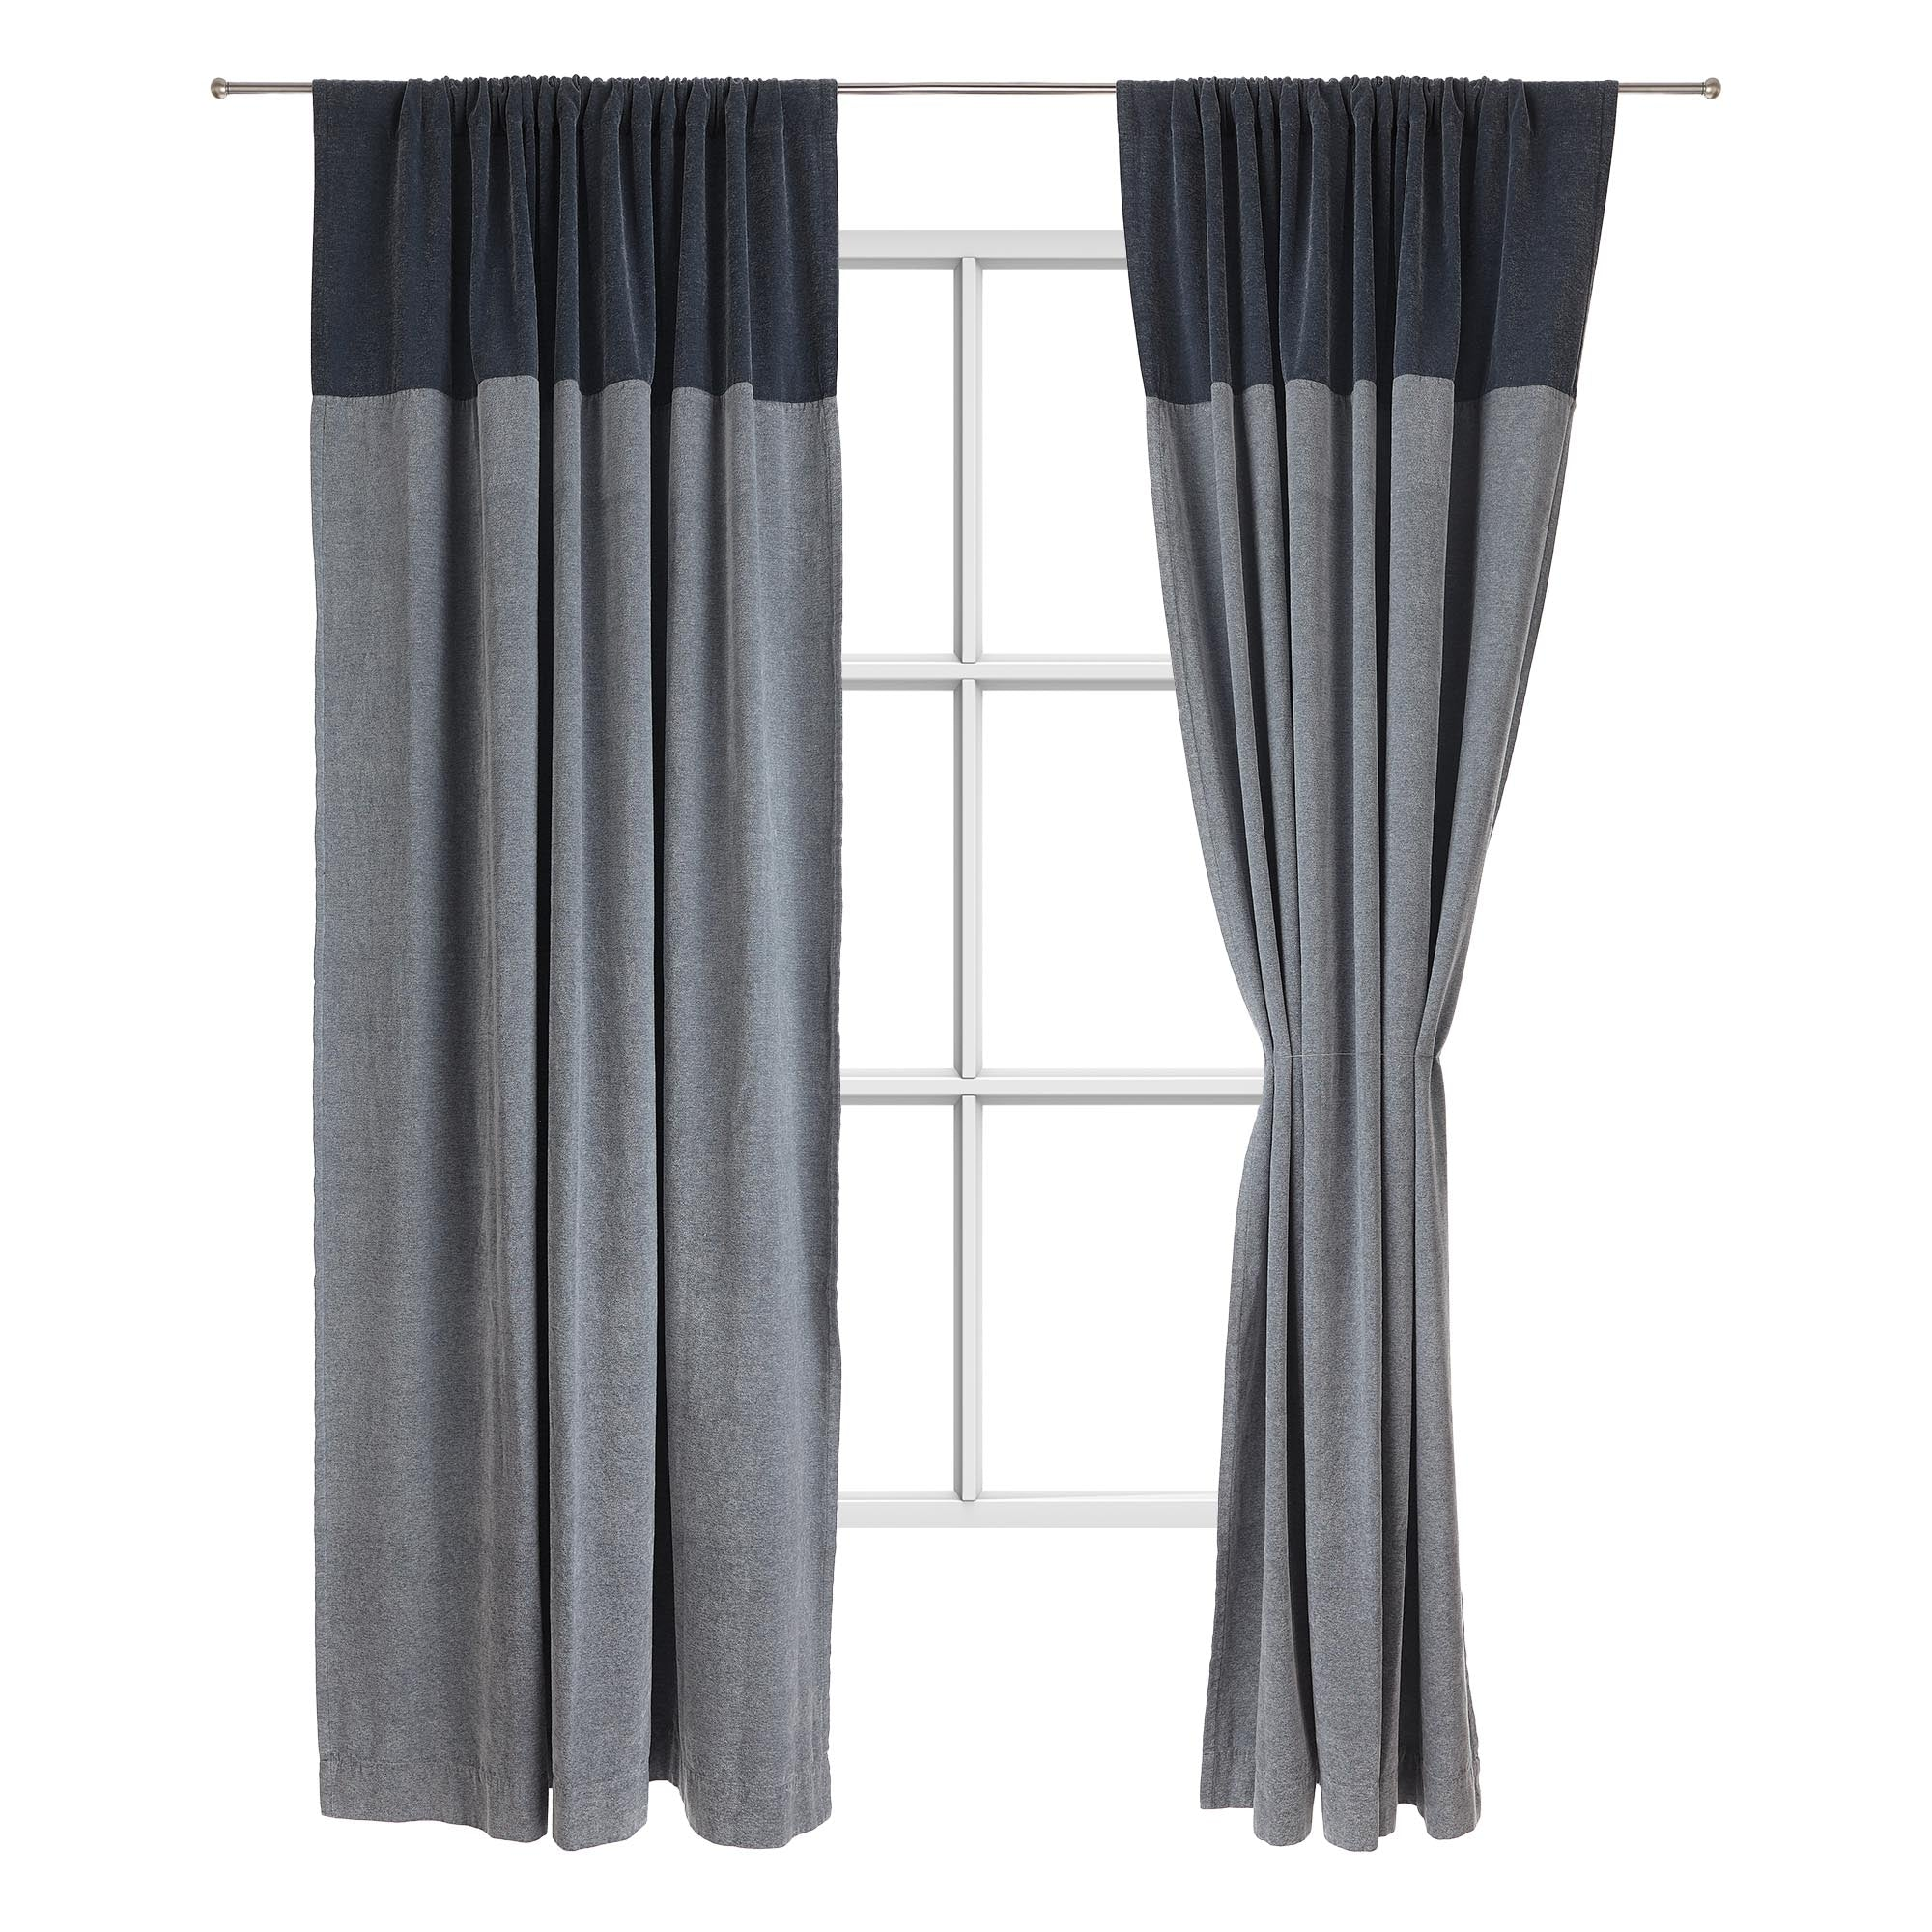 Calcada curtain teal & white, 60% cotton & 40% acrylic